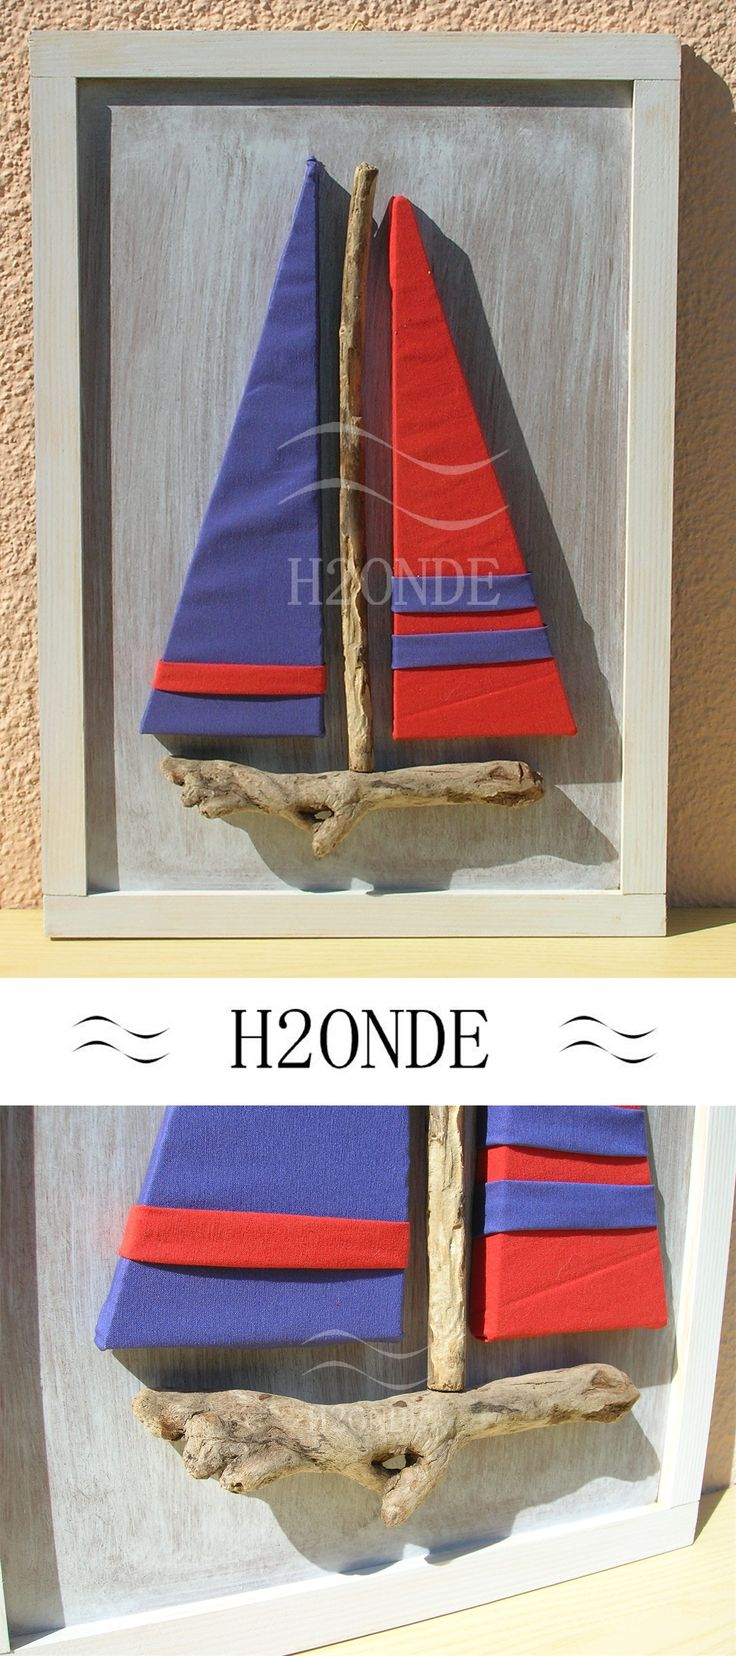 Driftwood framed sailboat wall art decor modern 3d beach original wood coastal shabby ocean hanging cottage office gift decoration nautical home decor painting living house cottage Quadro barca vela legno mare decorazione parete muro shabby arredo sala ingresso studio camera arredamento cucina ufficio marino nautico H2Onde made in Italy #homedecor #wallart